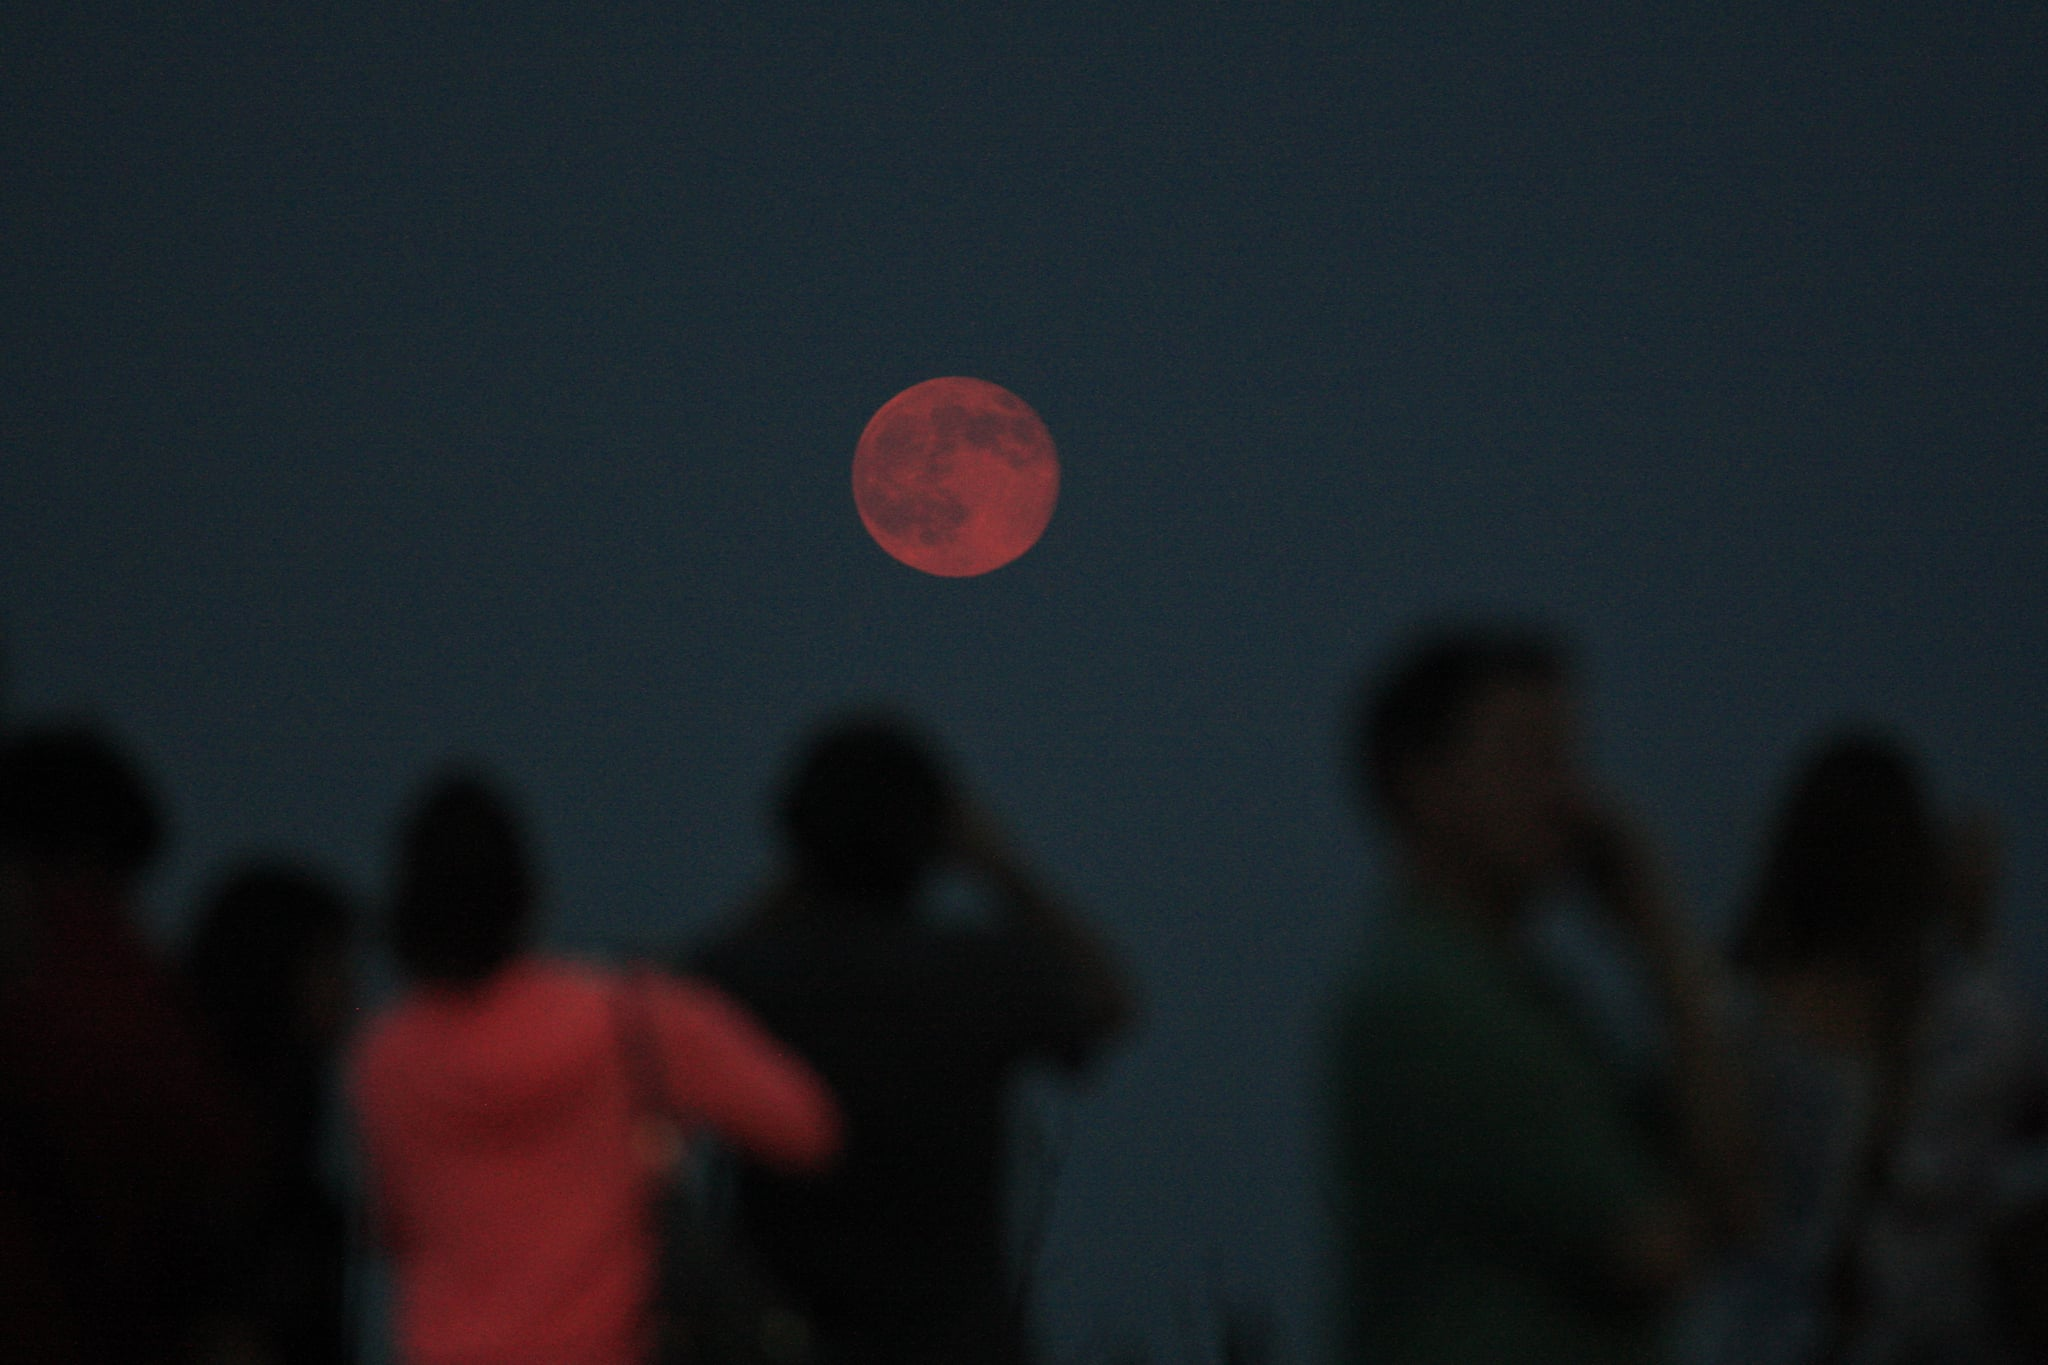 The supermoon is said to be 30 percent brighter than other full moons.